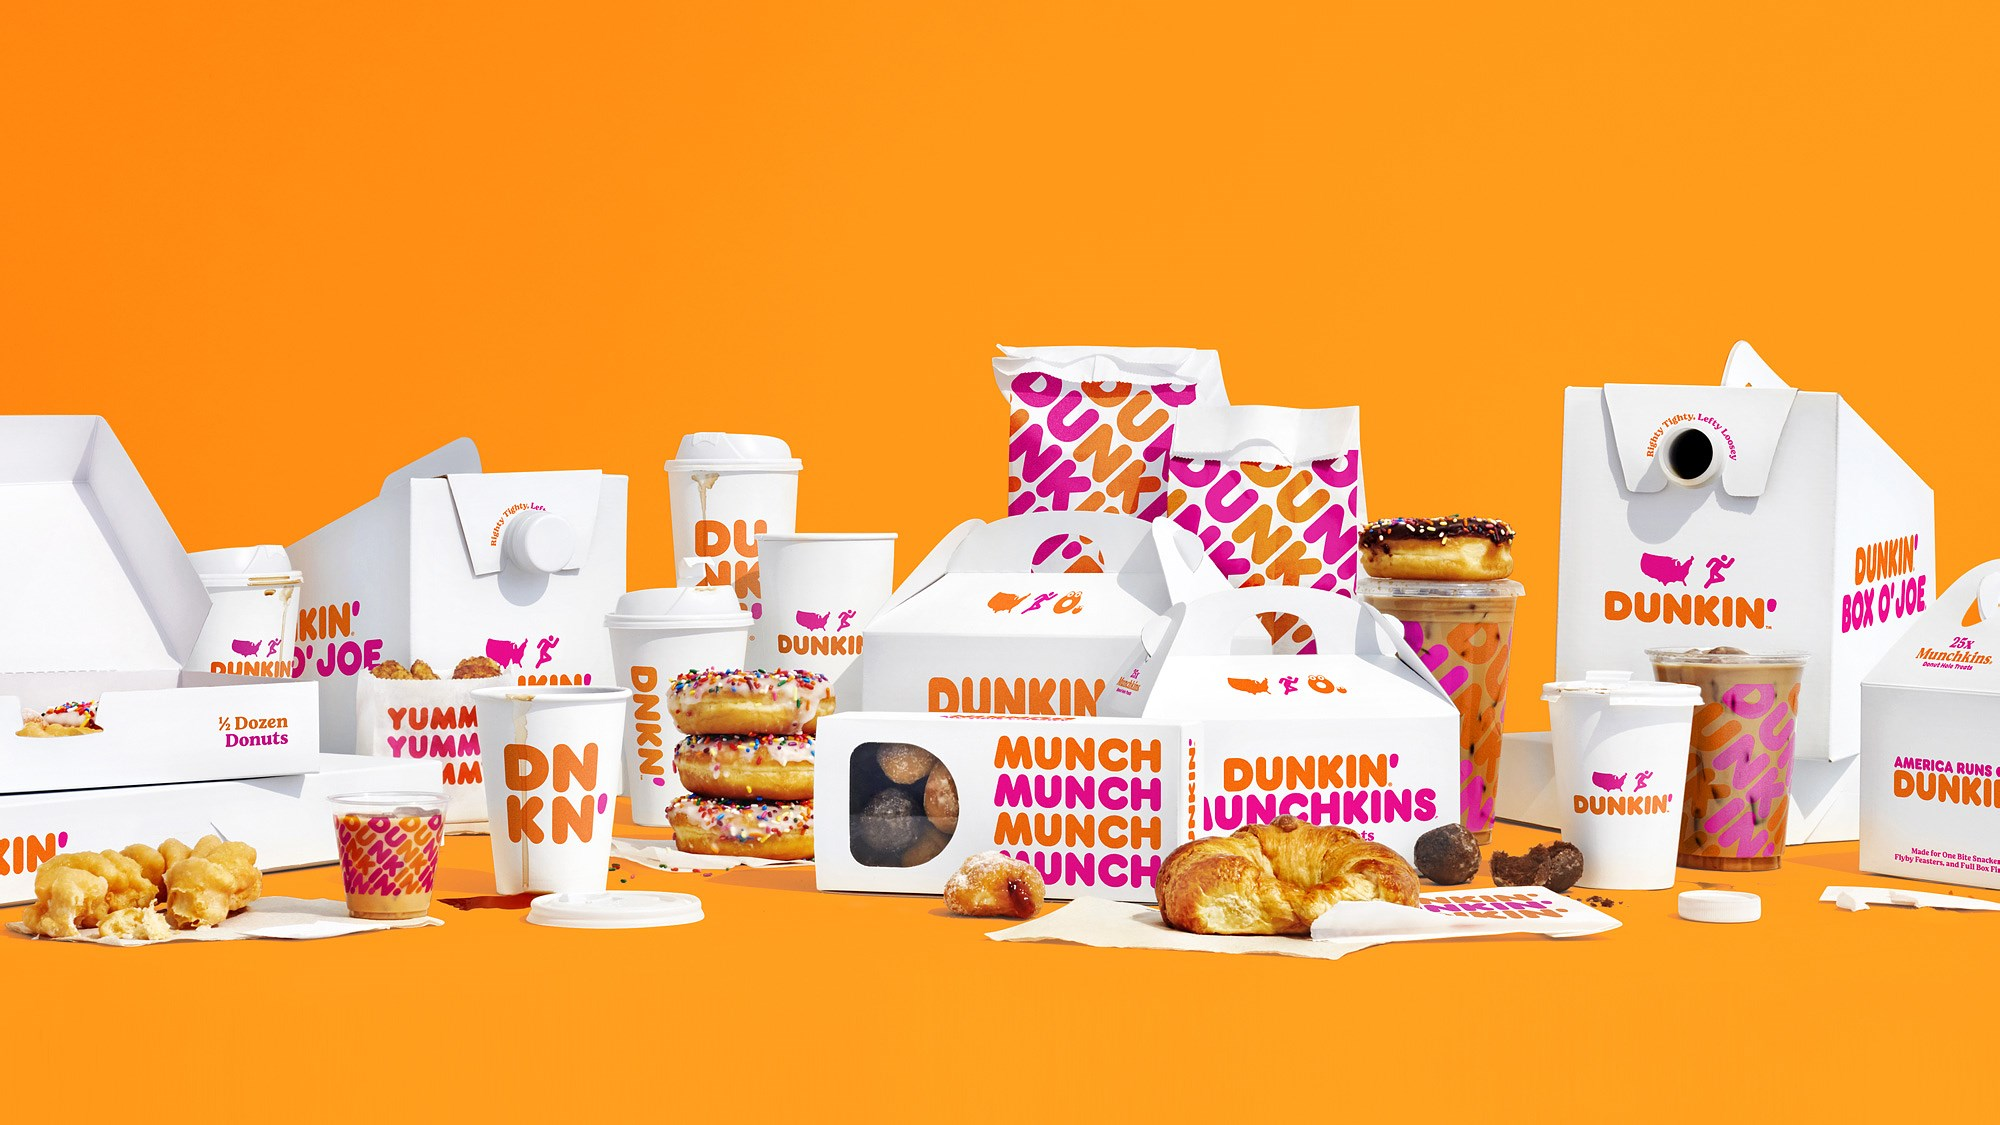 05-dunkin_packaging.jpg